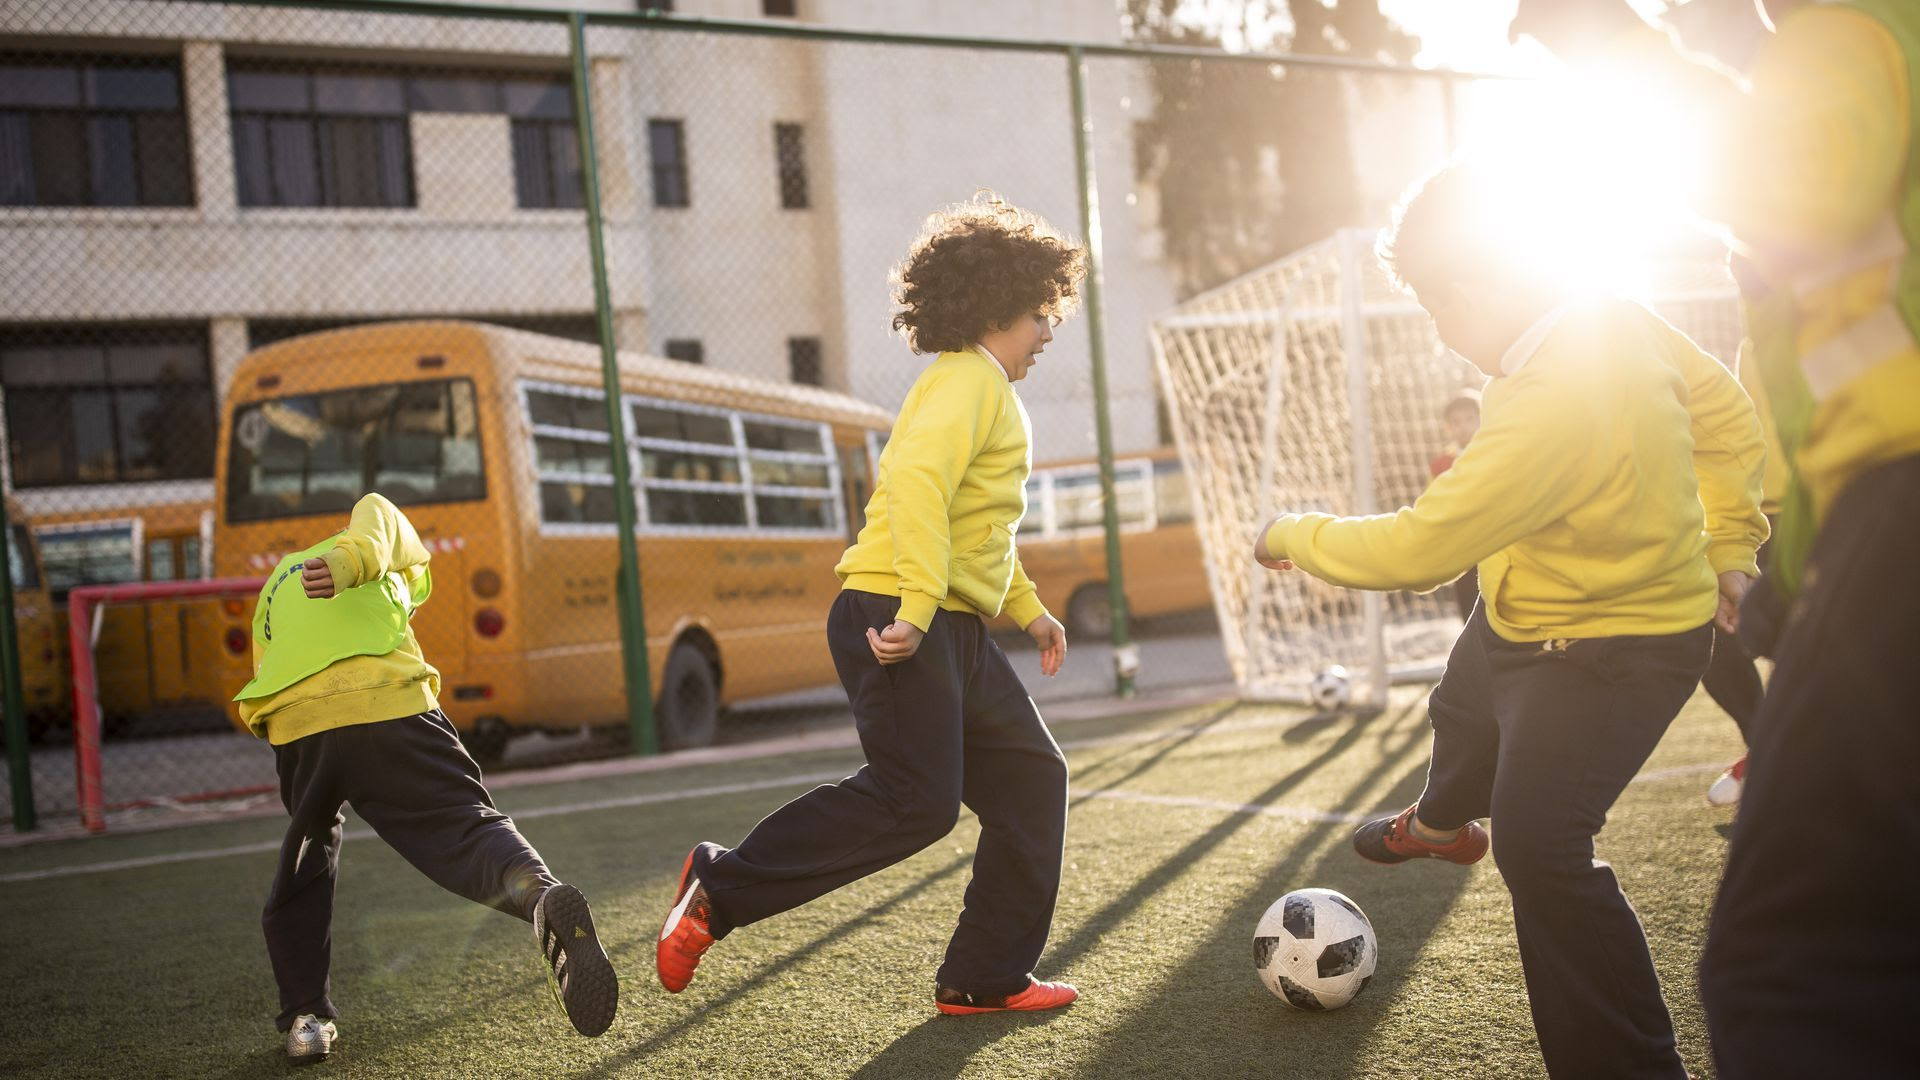 The fight against sports specialization for kids